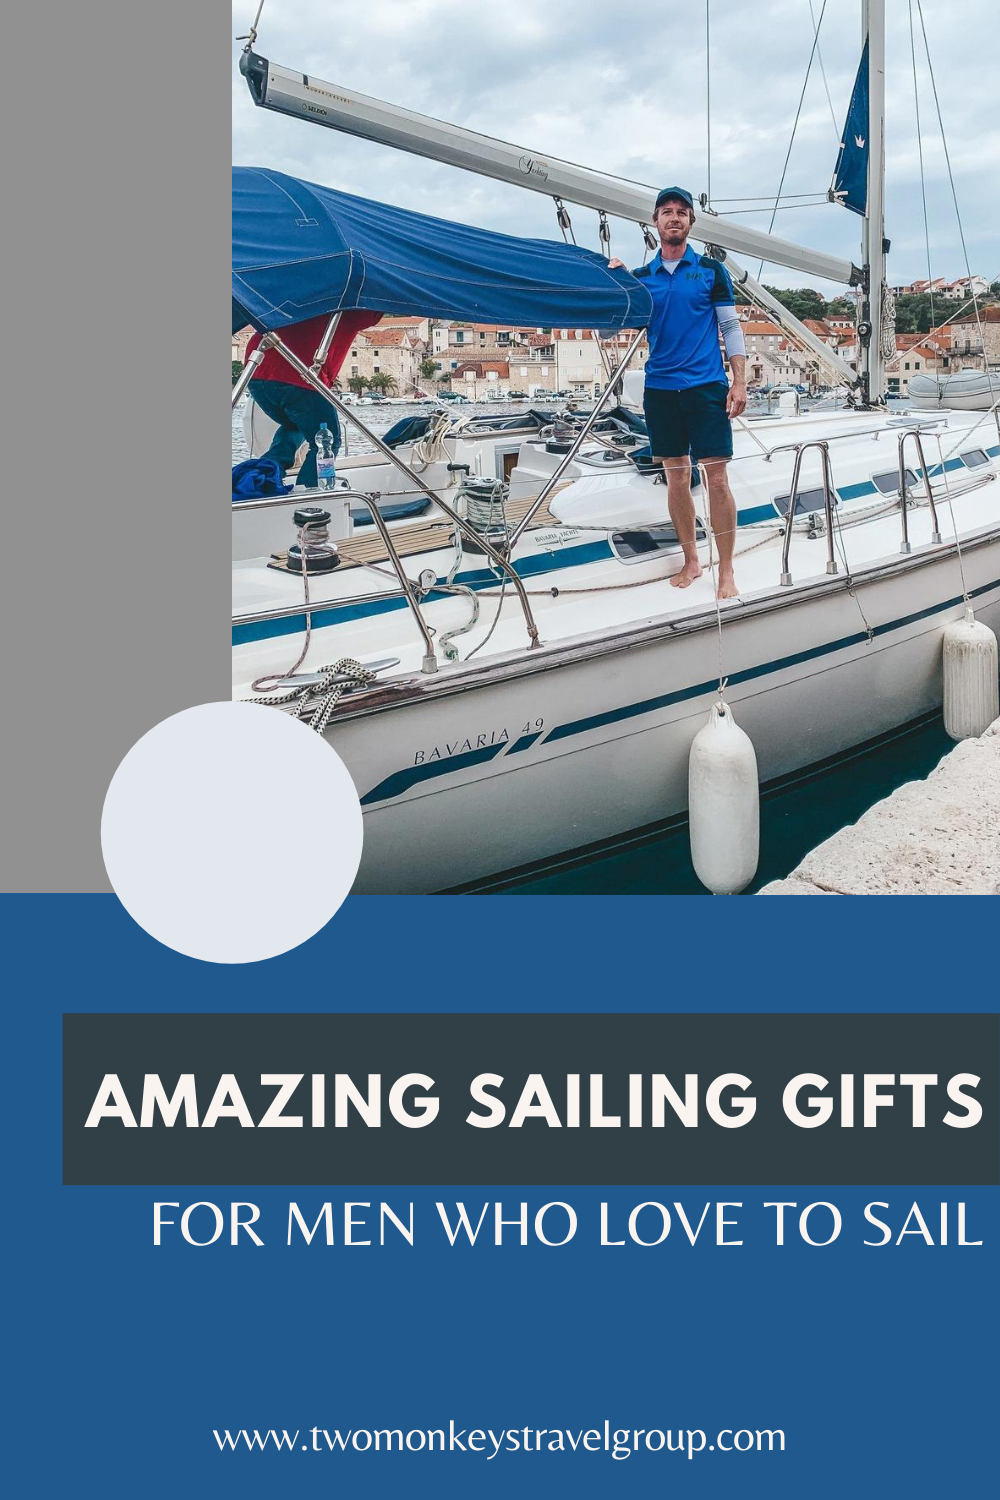 8 Amazing Sailing Gifts for Men Who Love to Sail